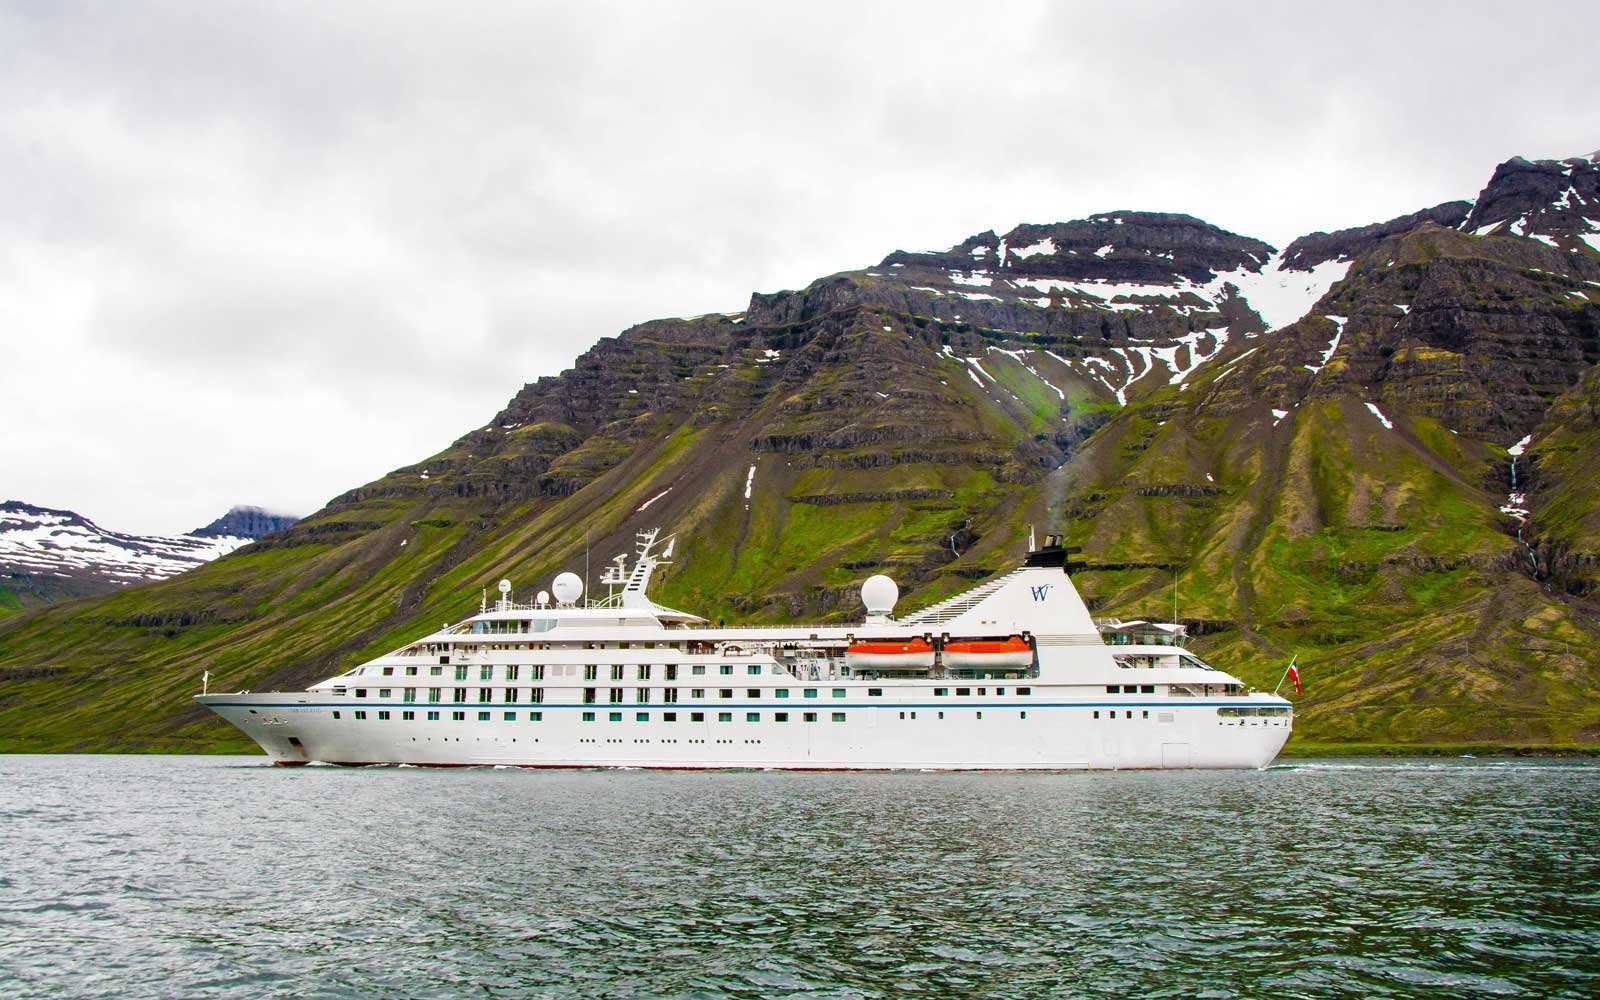 Windstar Star Legend cruise ship in Seydisfjordur, Iceland